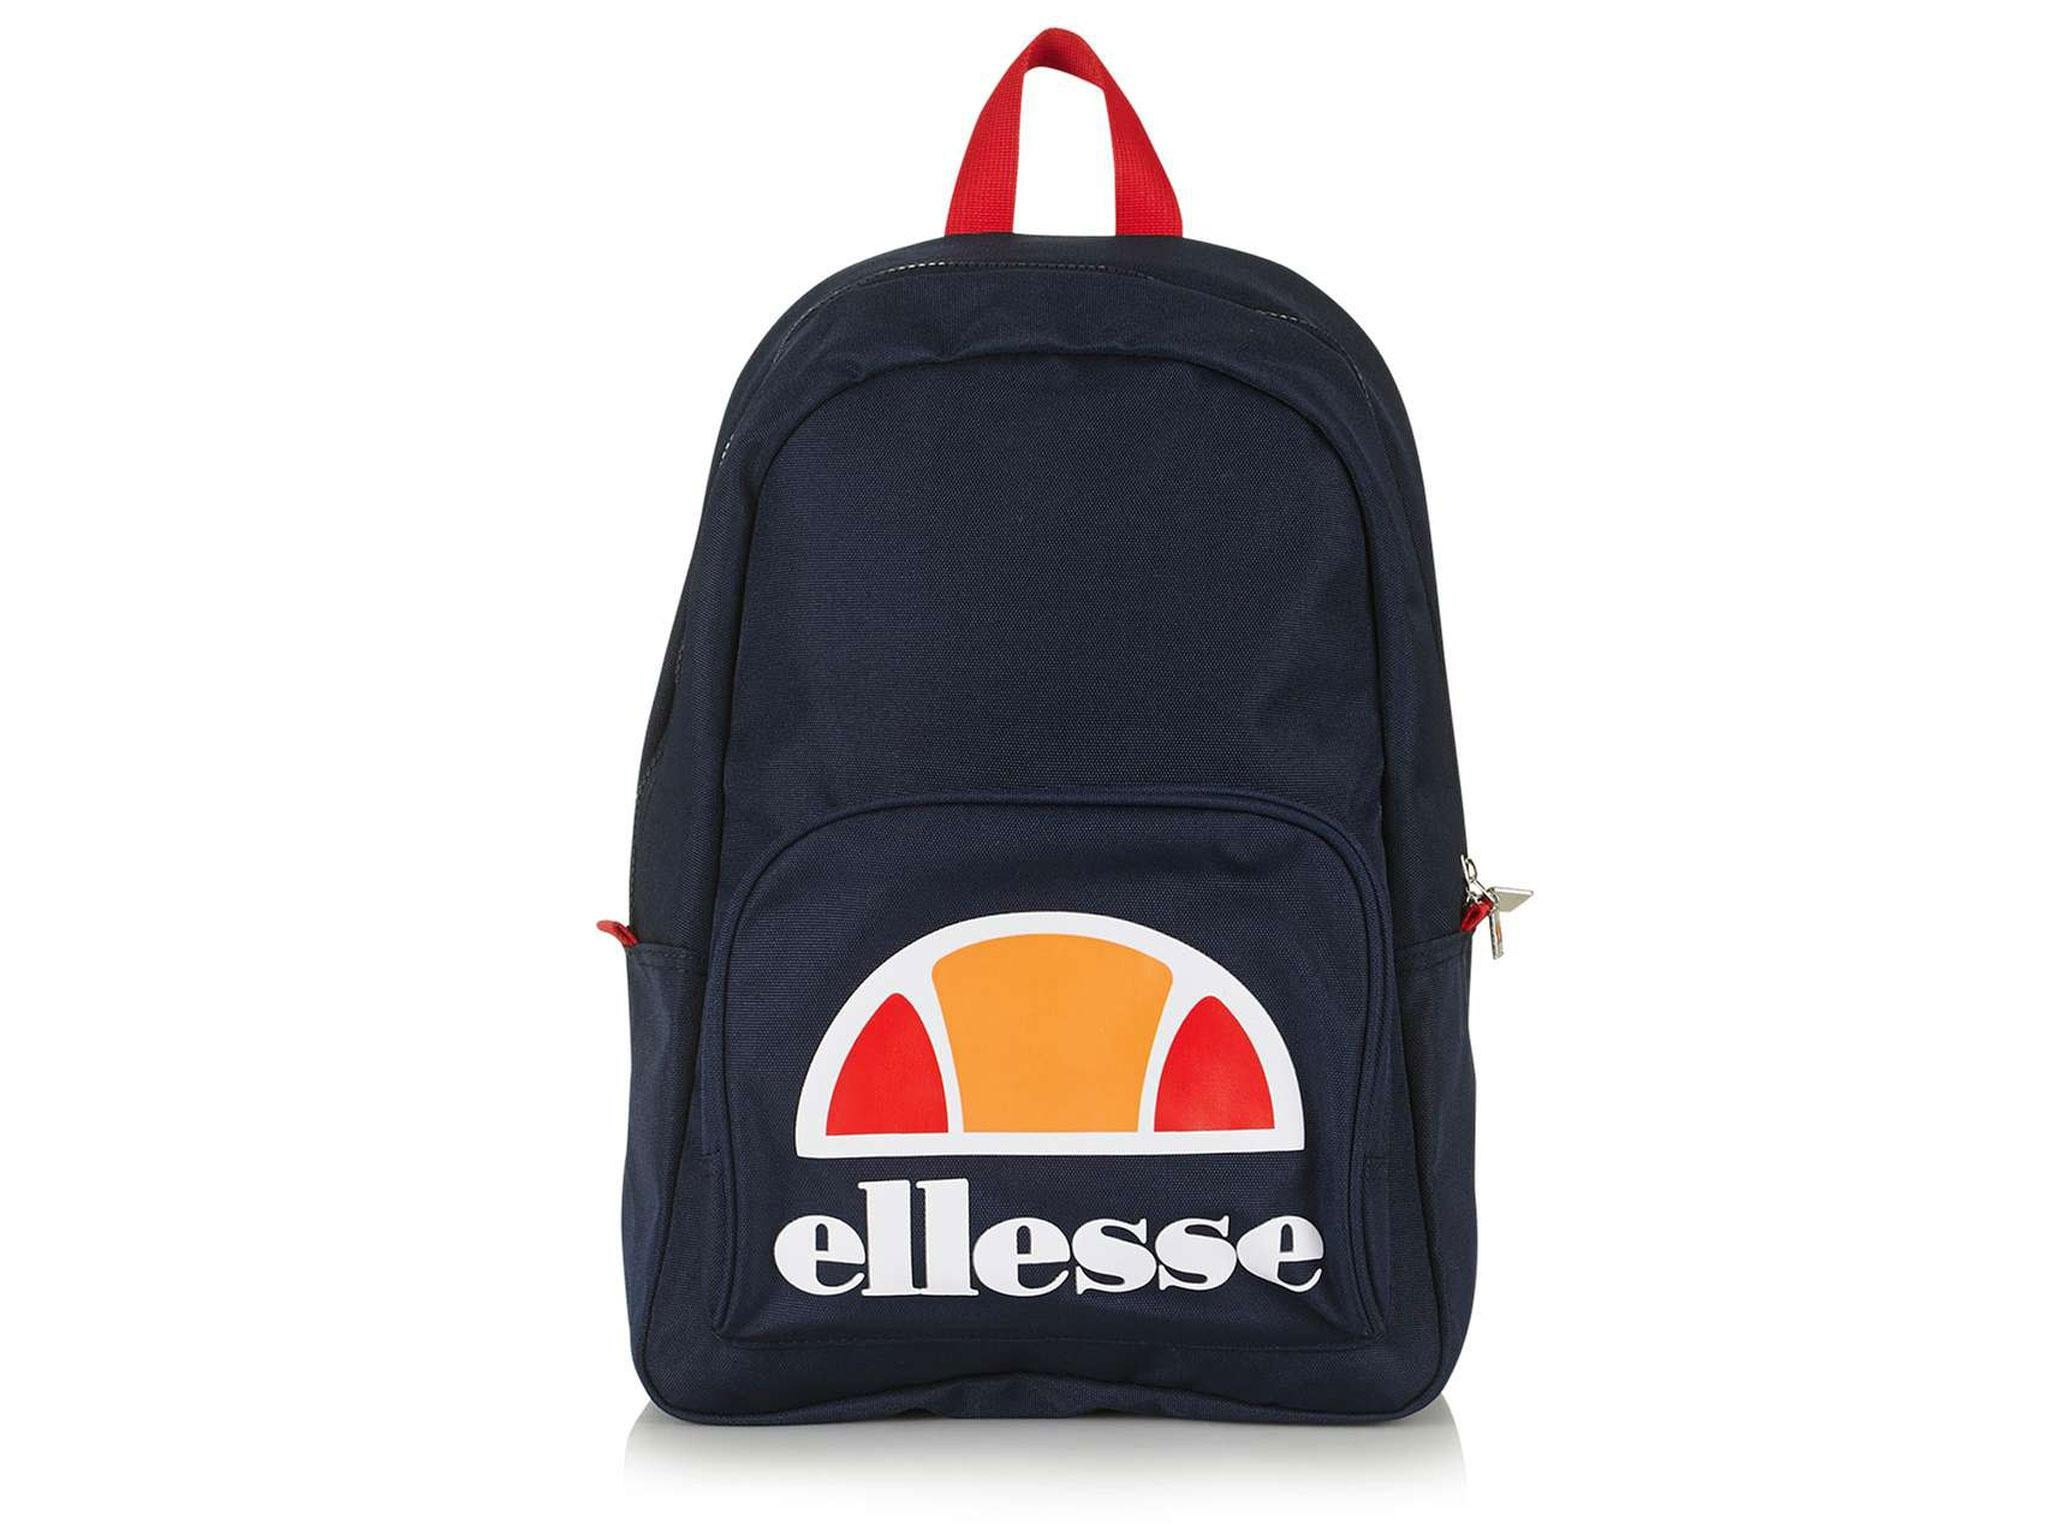 Ladies Sports Backpacks Uk - CEAGESP 770623006a